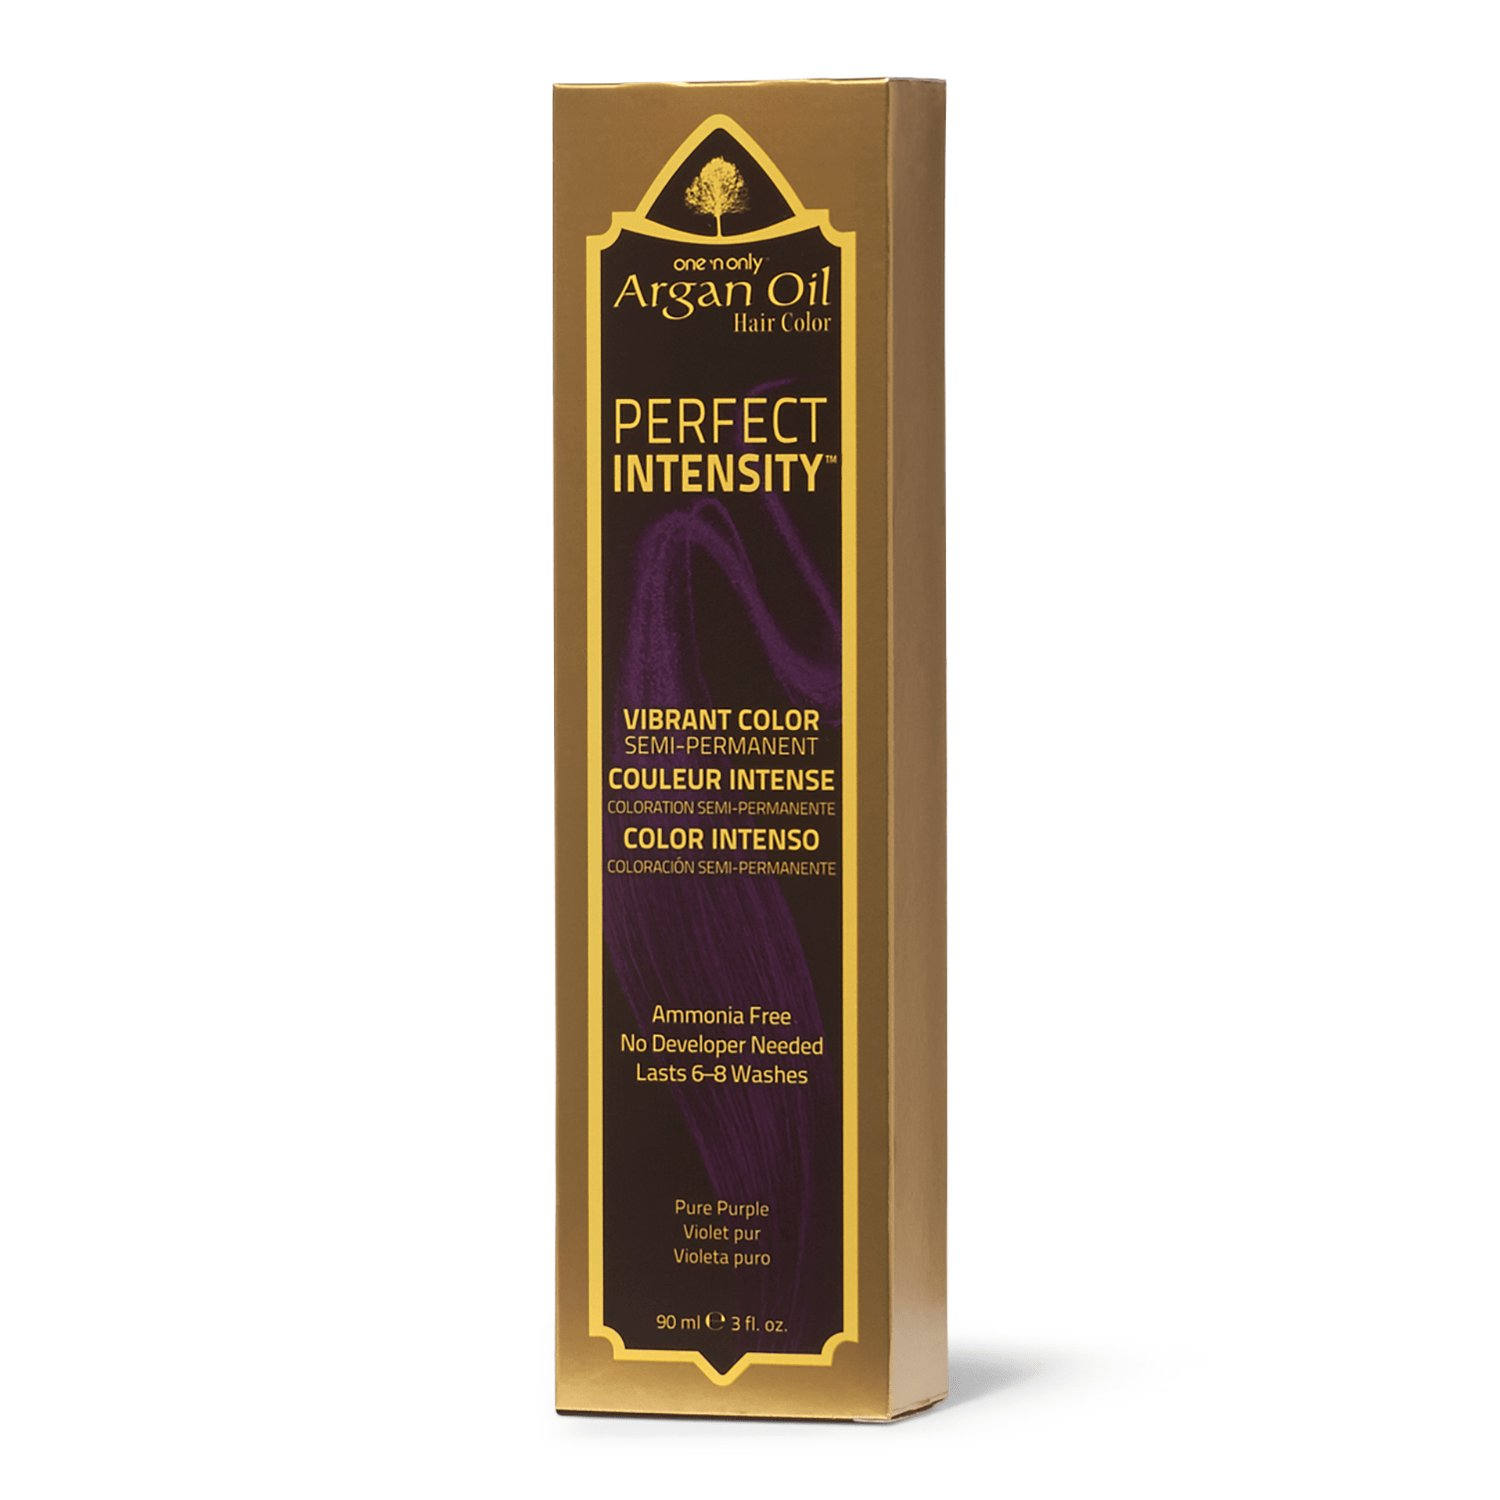 The Best One 'N Only Argan Oil Hair Color Perfect Intensity Pure Purple Pictures